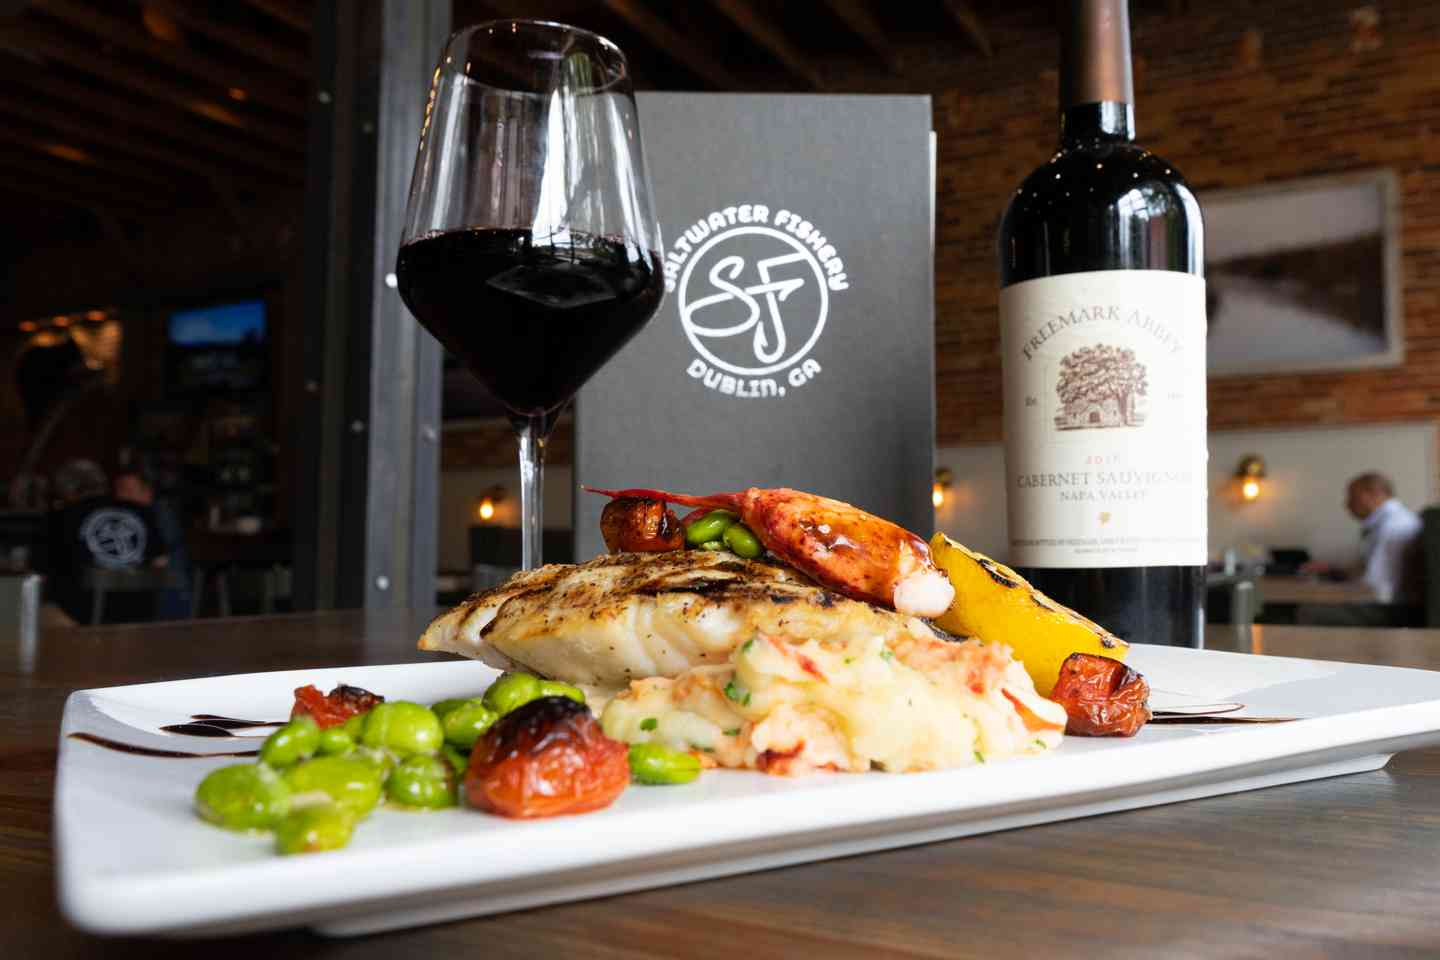 Grilled red snapper with lobster mashed potatoes